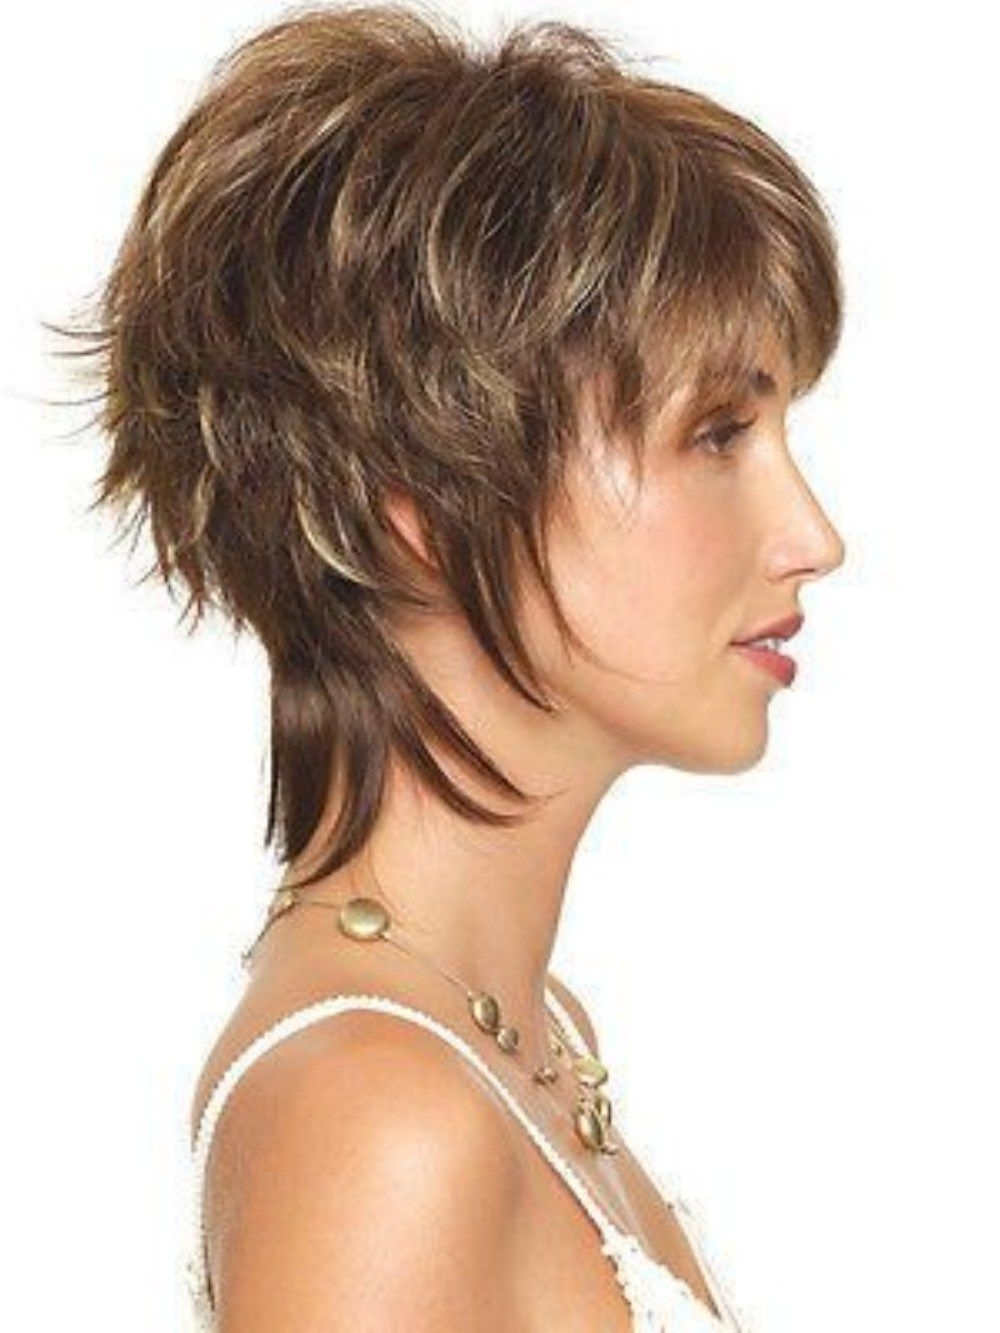 Shag Hairstyles Regarding Current Shaggy Brown Hairstyles (View 10 of 15)